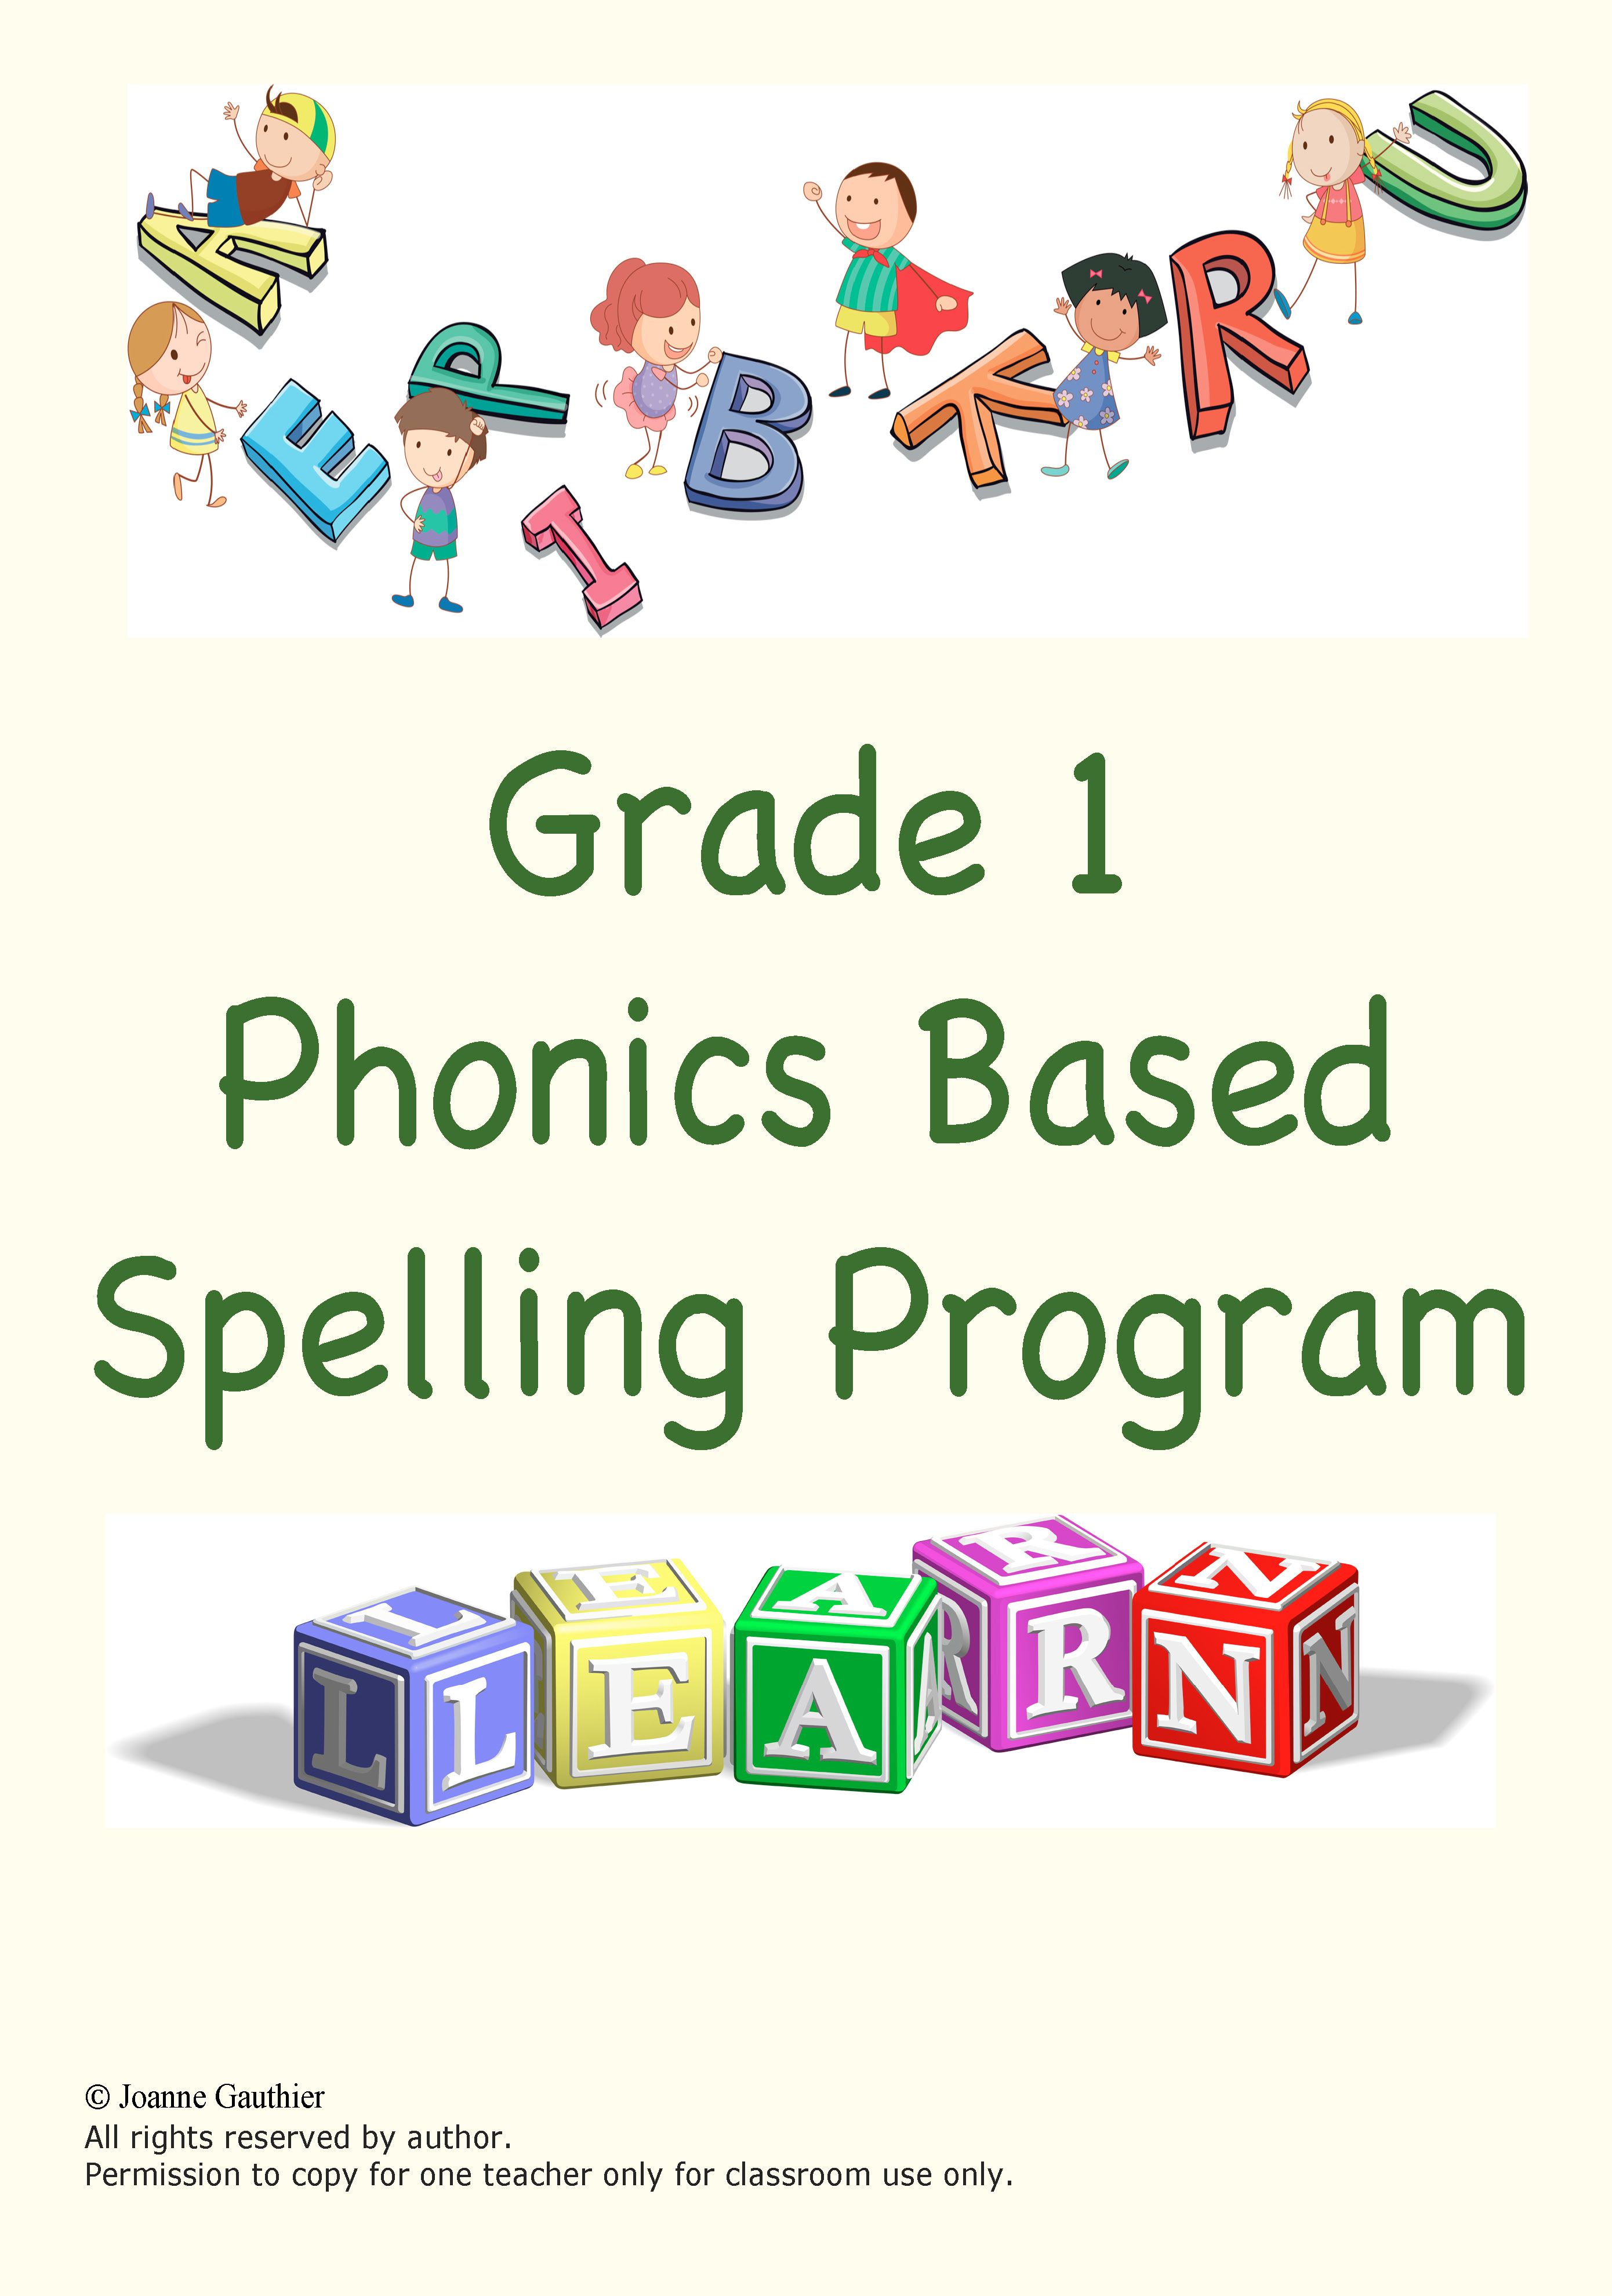 Grade 1 Spelling Program Phonics Based Distance Learning